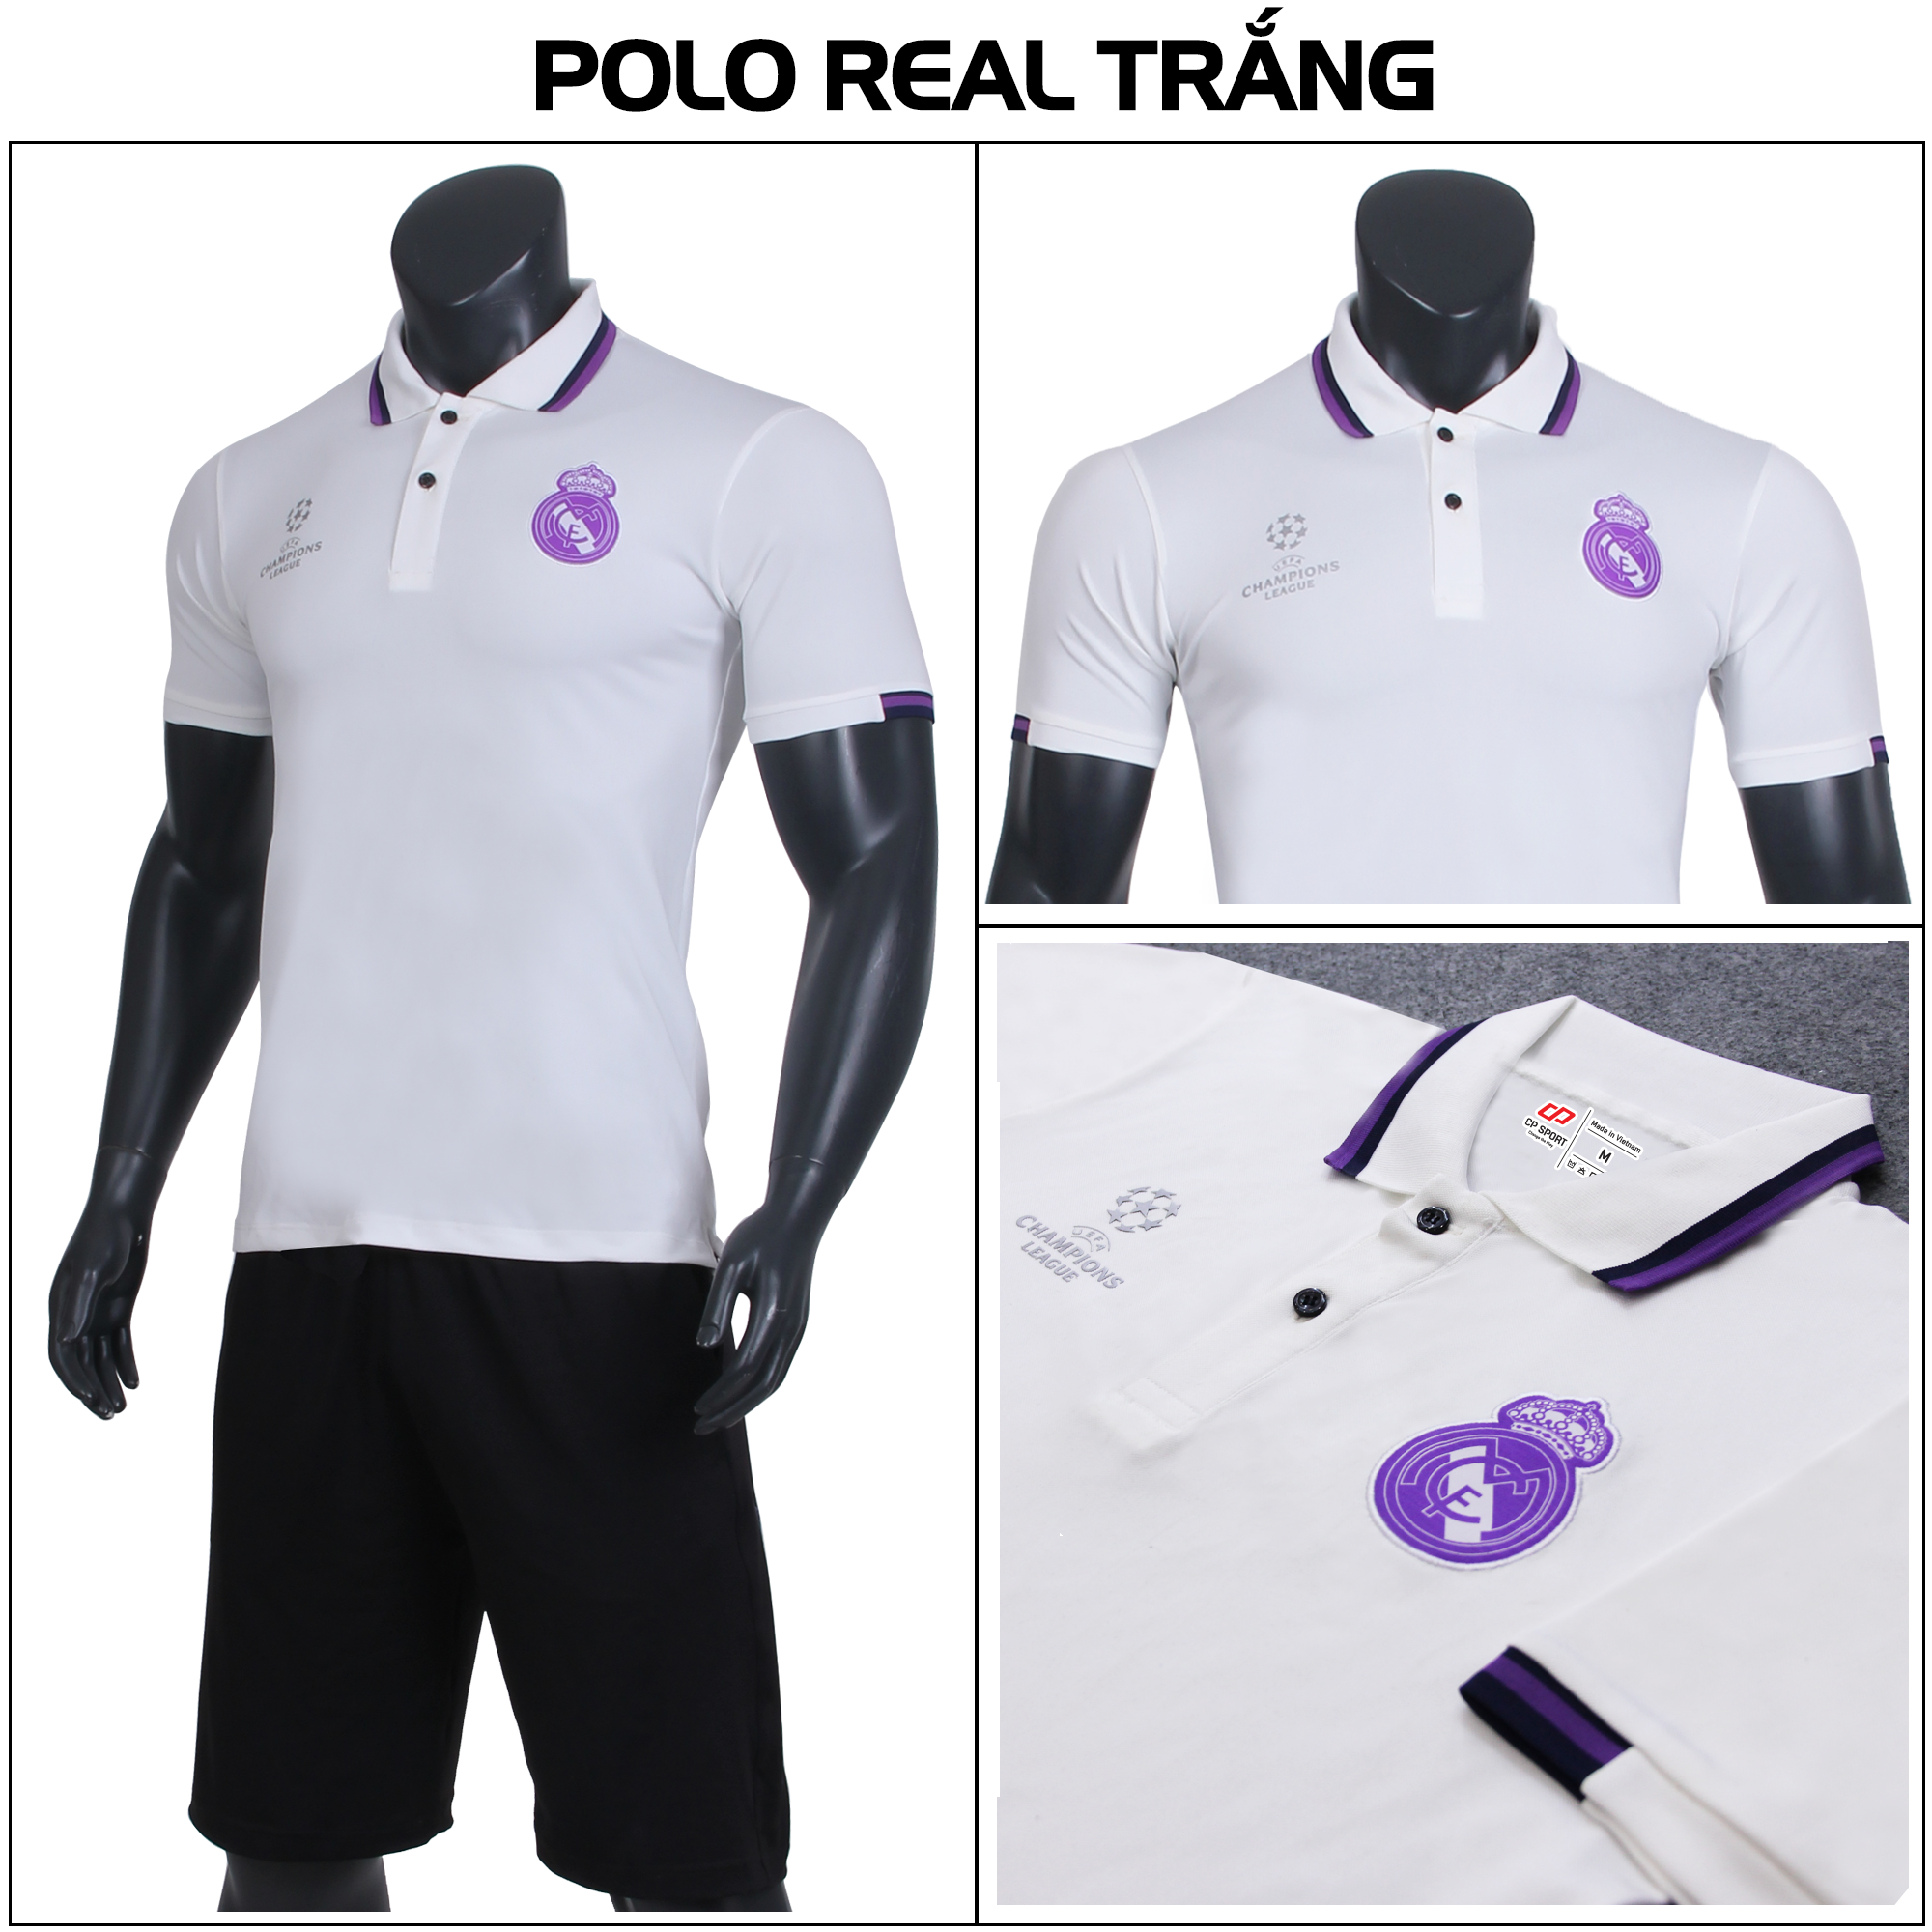 POLO REAL TRẮNG